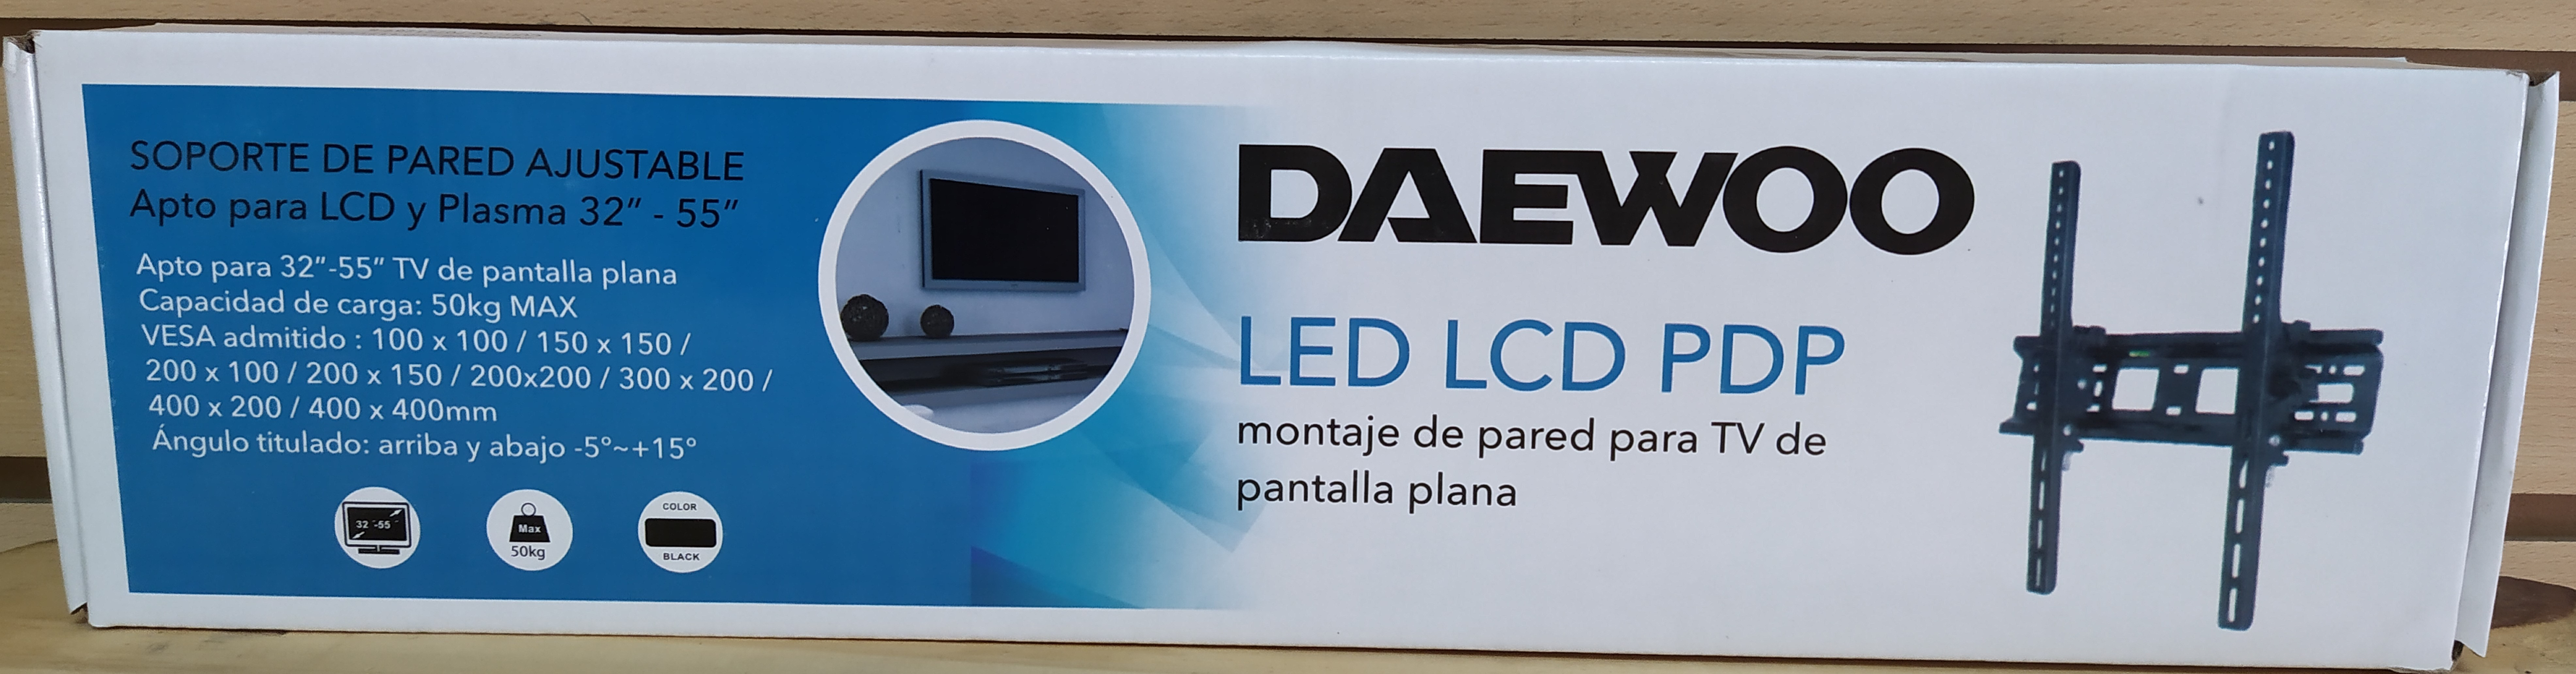 E16 SOPORTE DE TV PARA PARED DAEWOO HT002